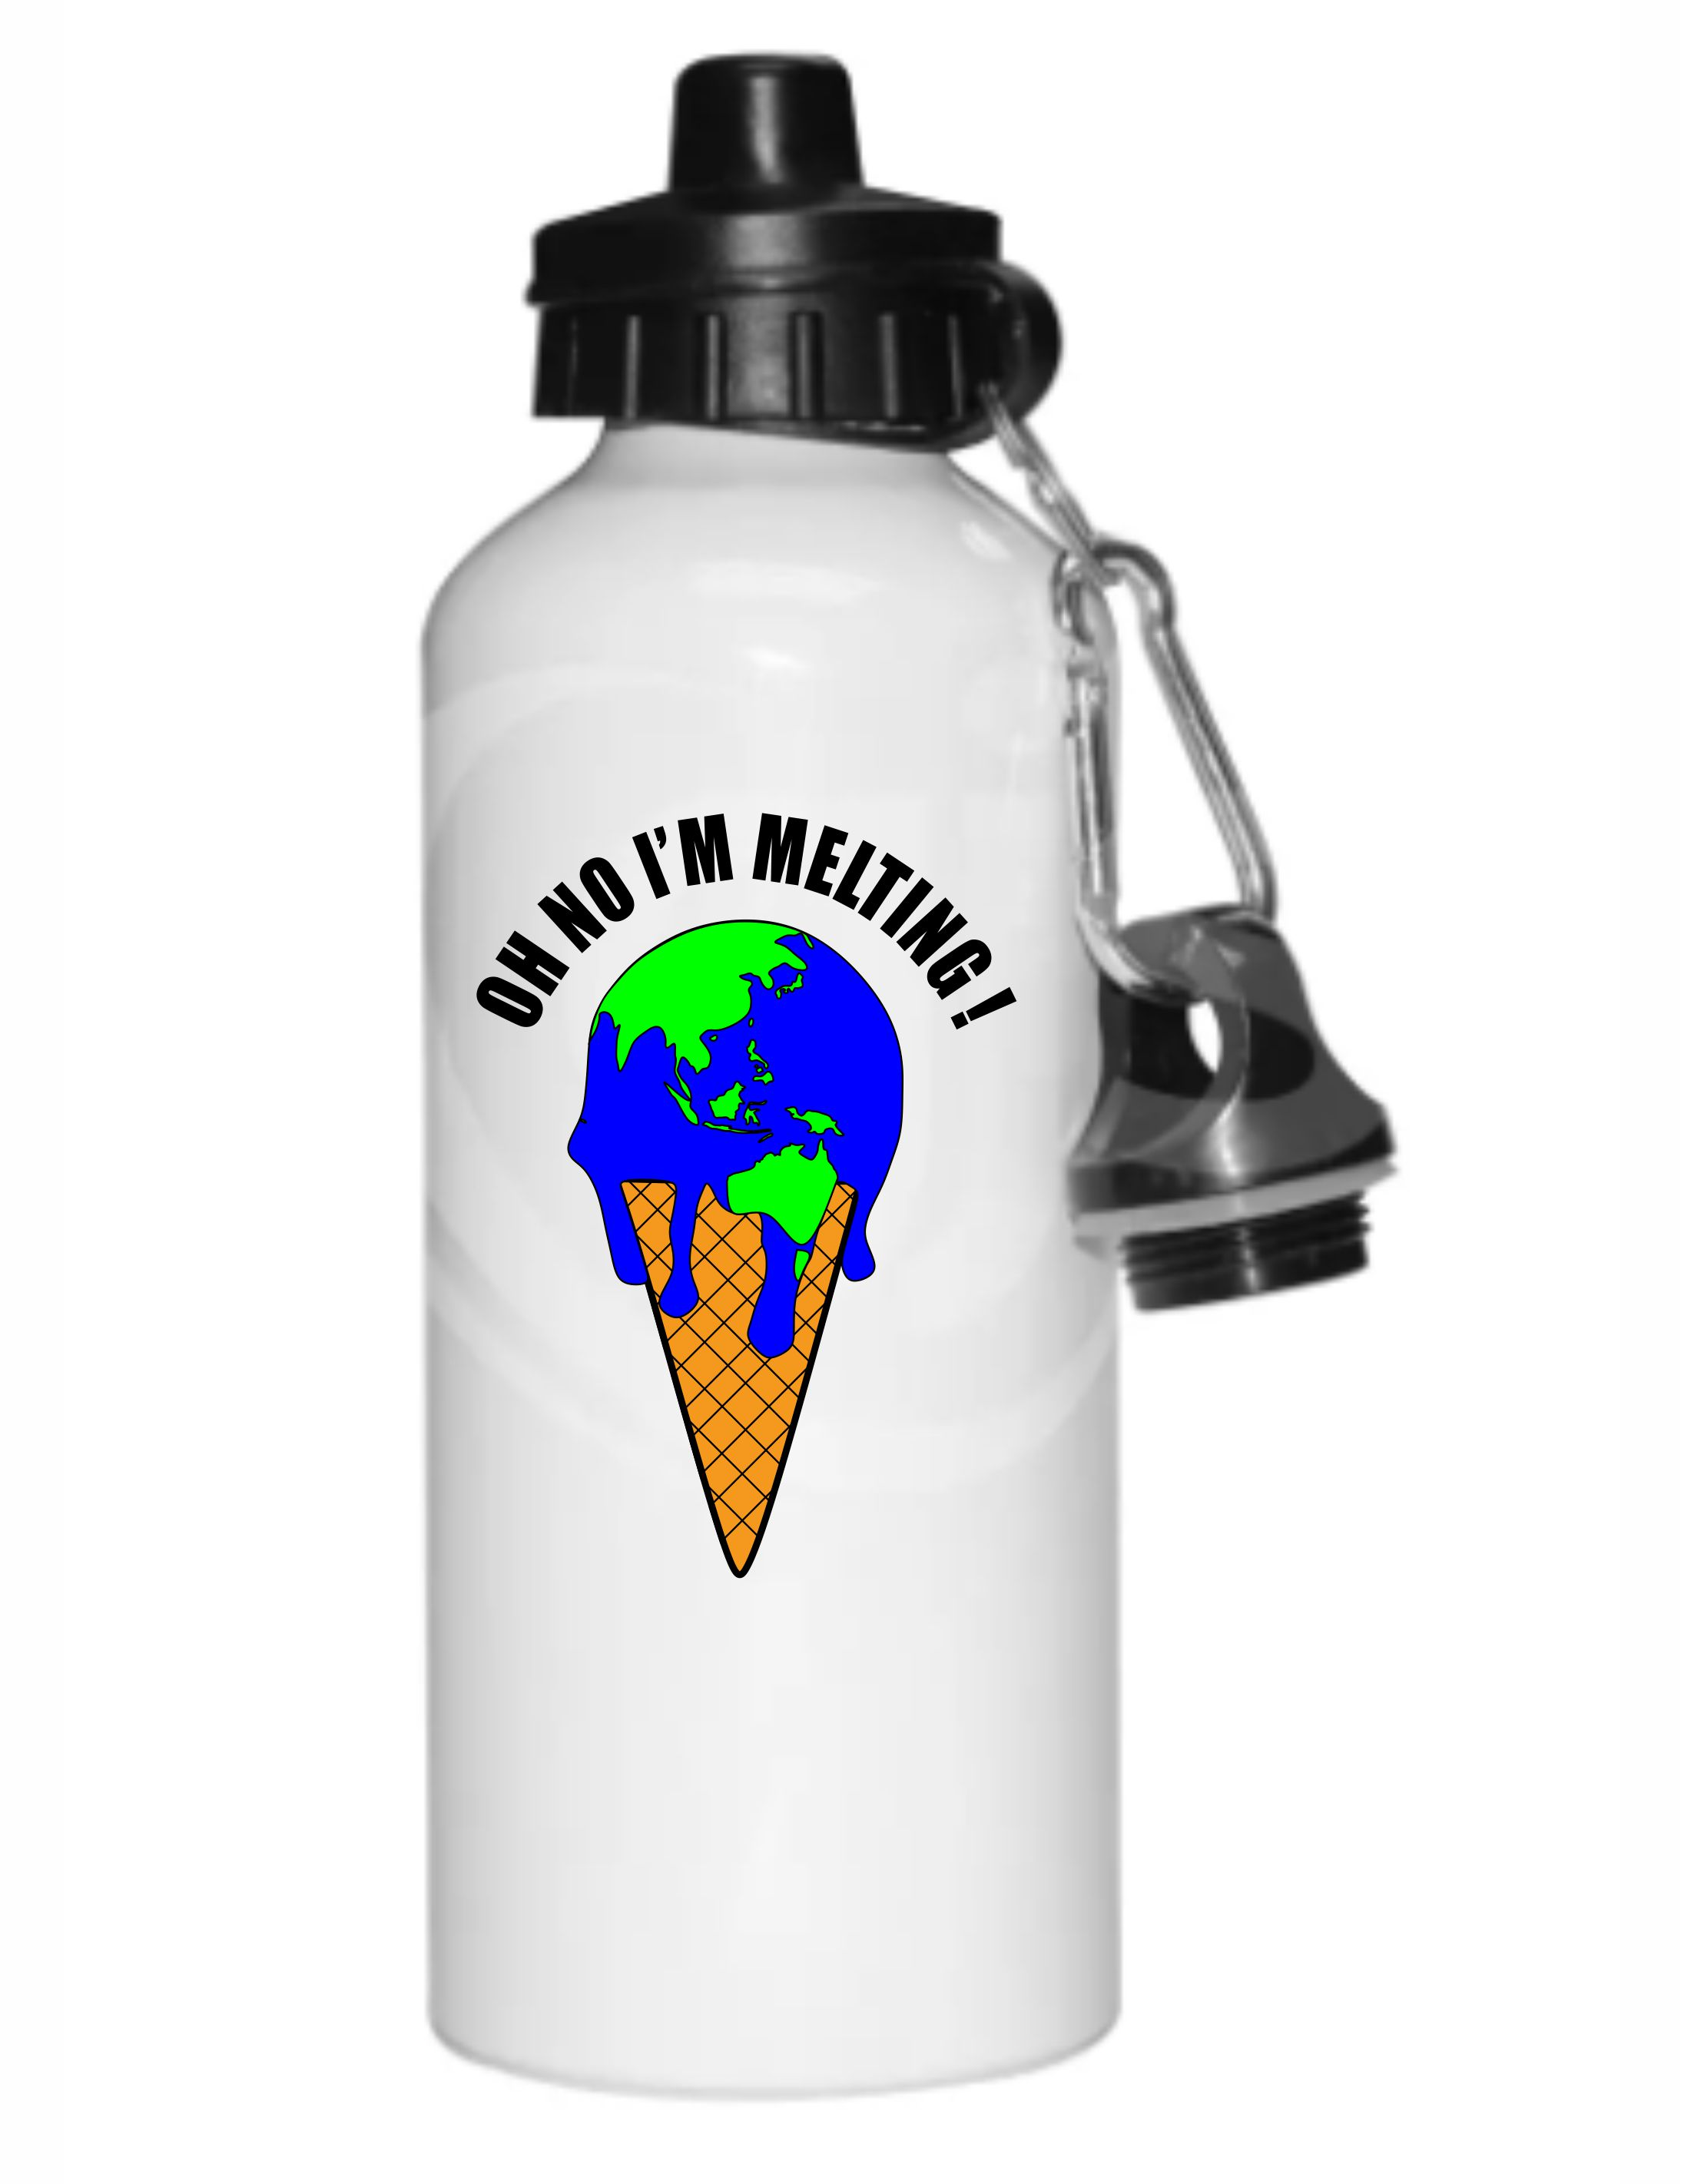 Stemm Melting earth drink bottle